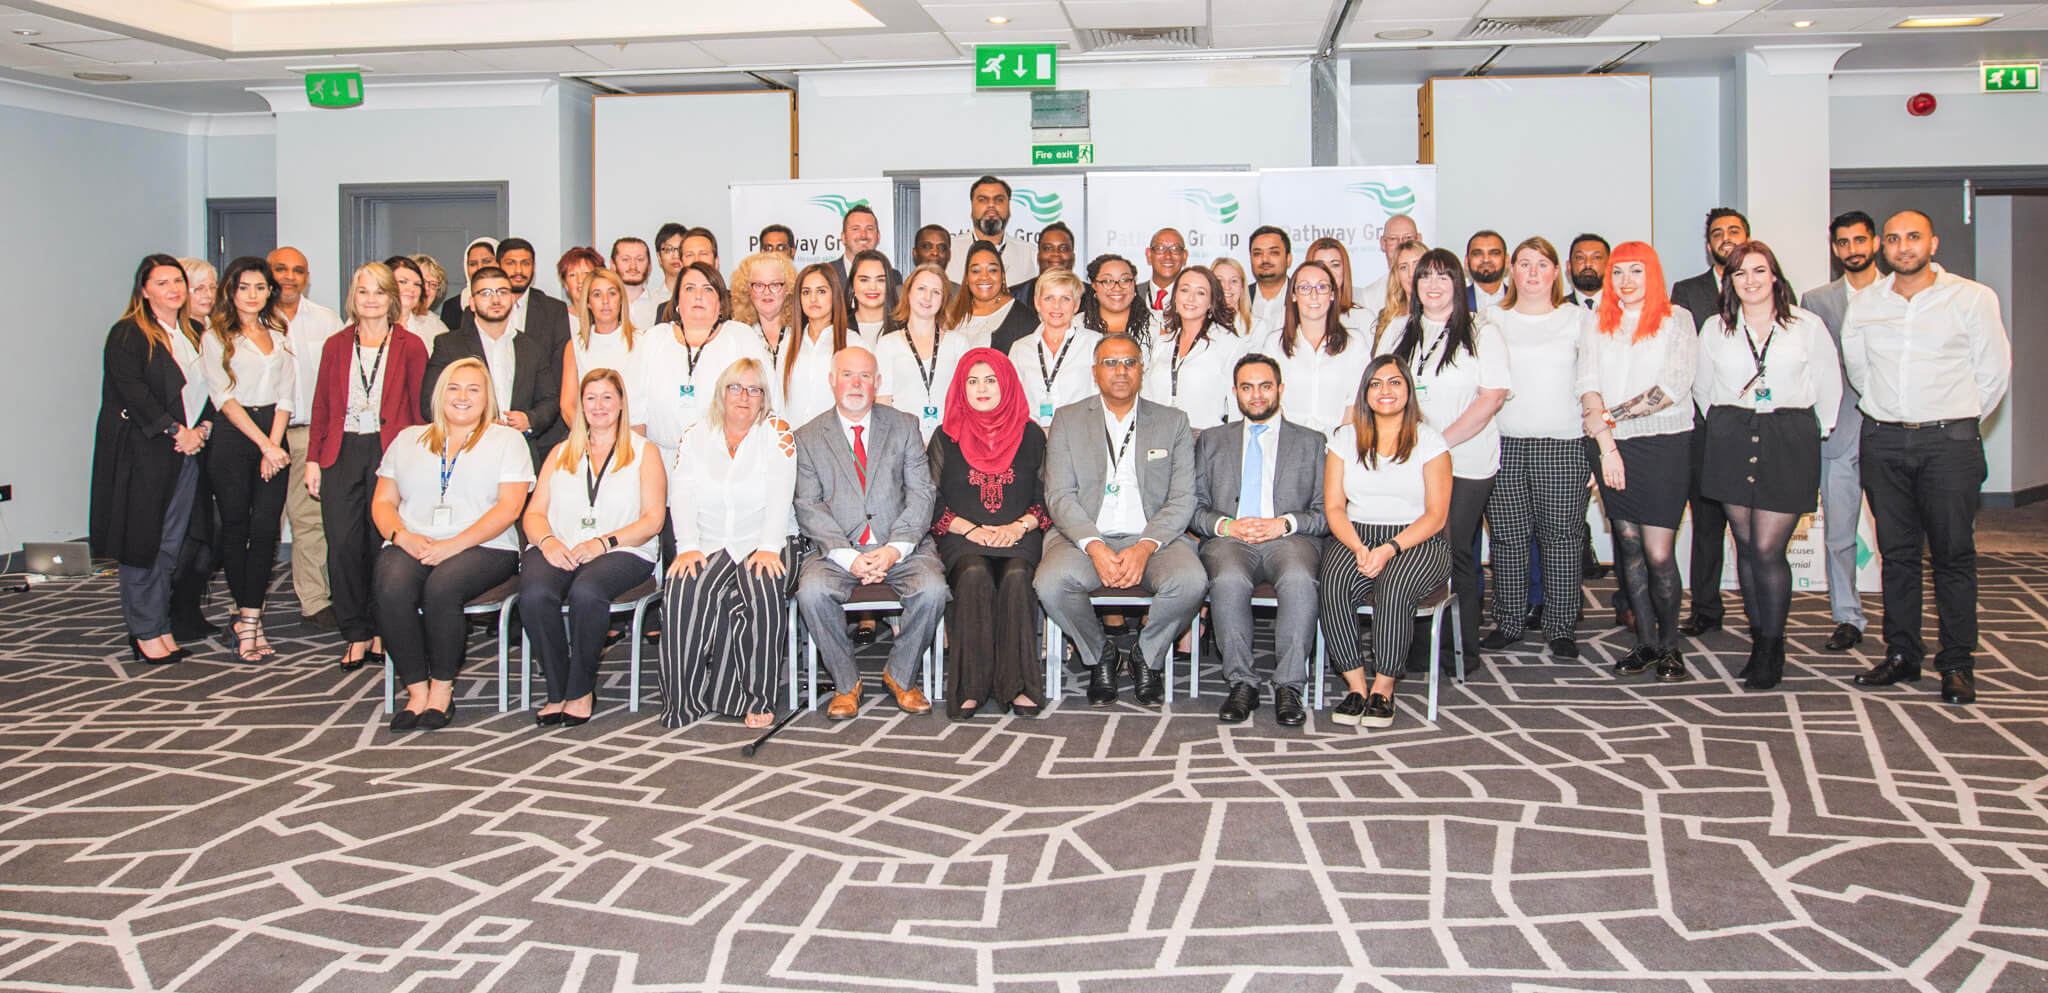 Pathway Group AGM - Village Hotel Walsall 2019